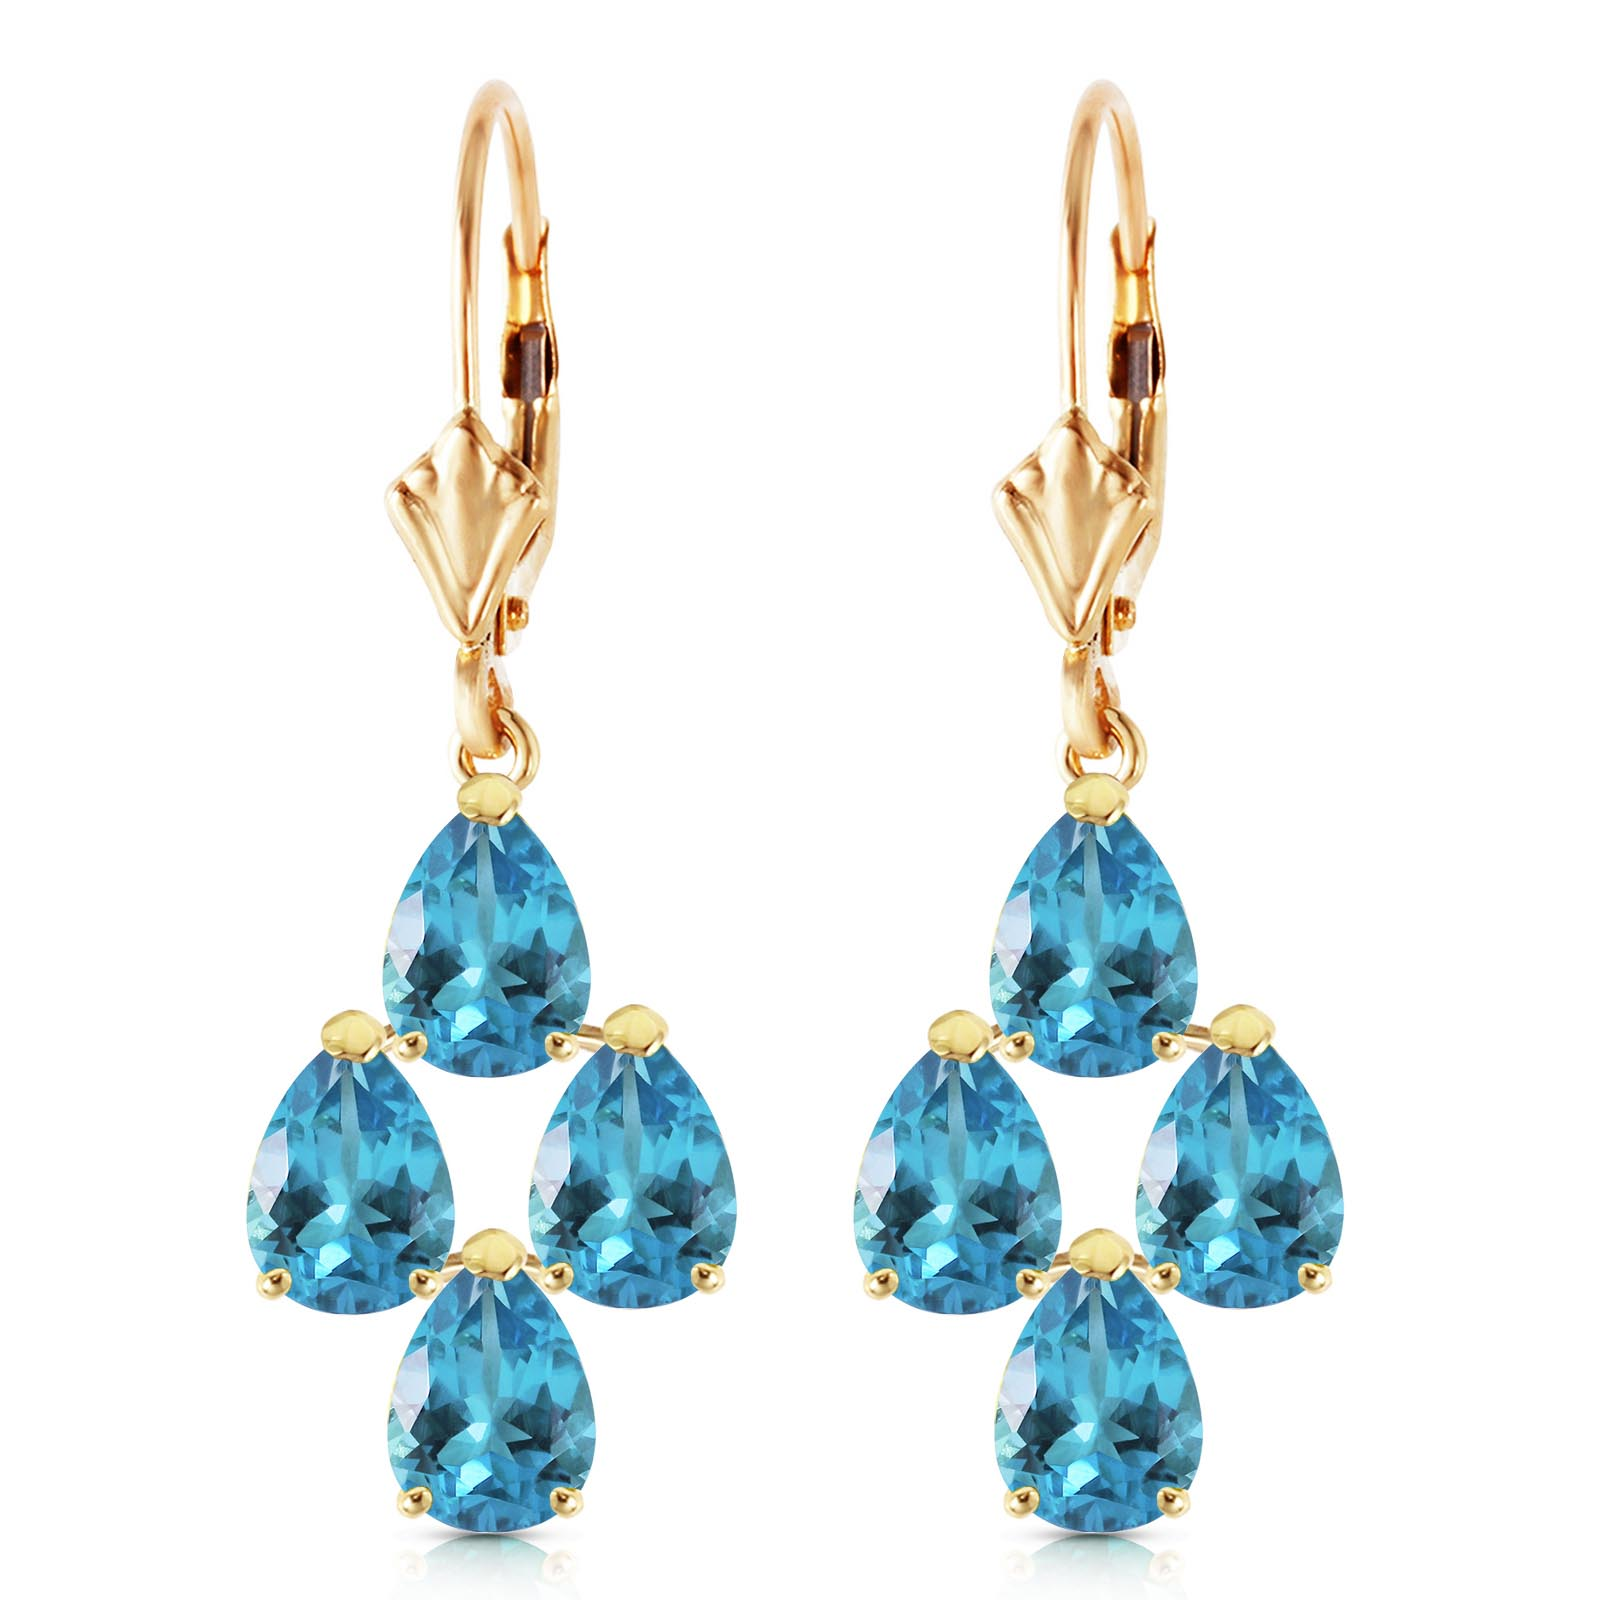 Blue Topaz Drop Earrings 4.5ctw in 14K Gold